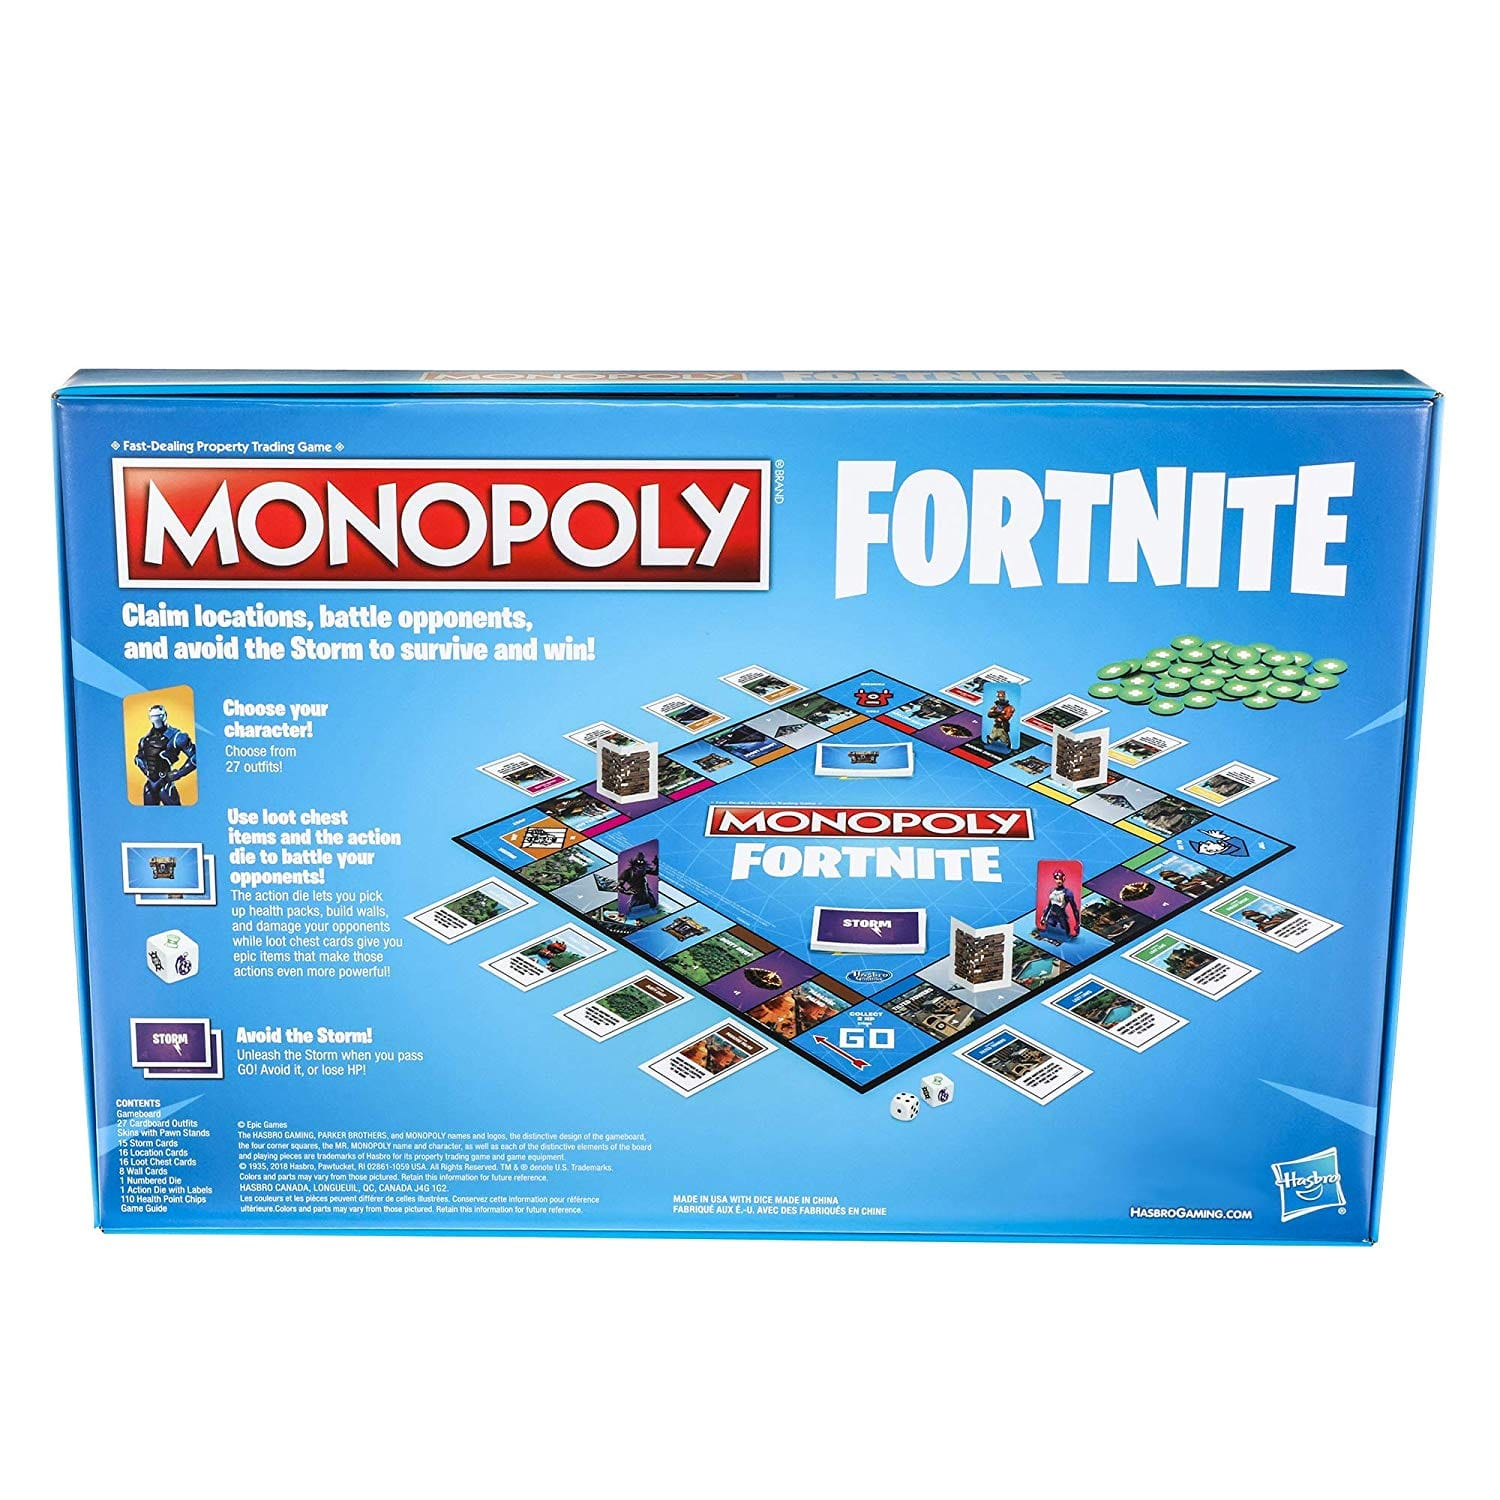 monopoly fortnite edition board game inspired by fortnite video game ages 13 and up 8 99 free shipping with amazon prime - fortnite monopoly gameplay